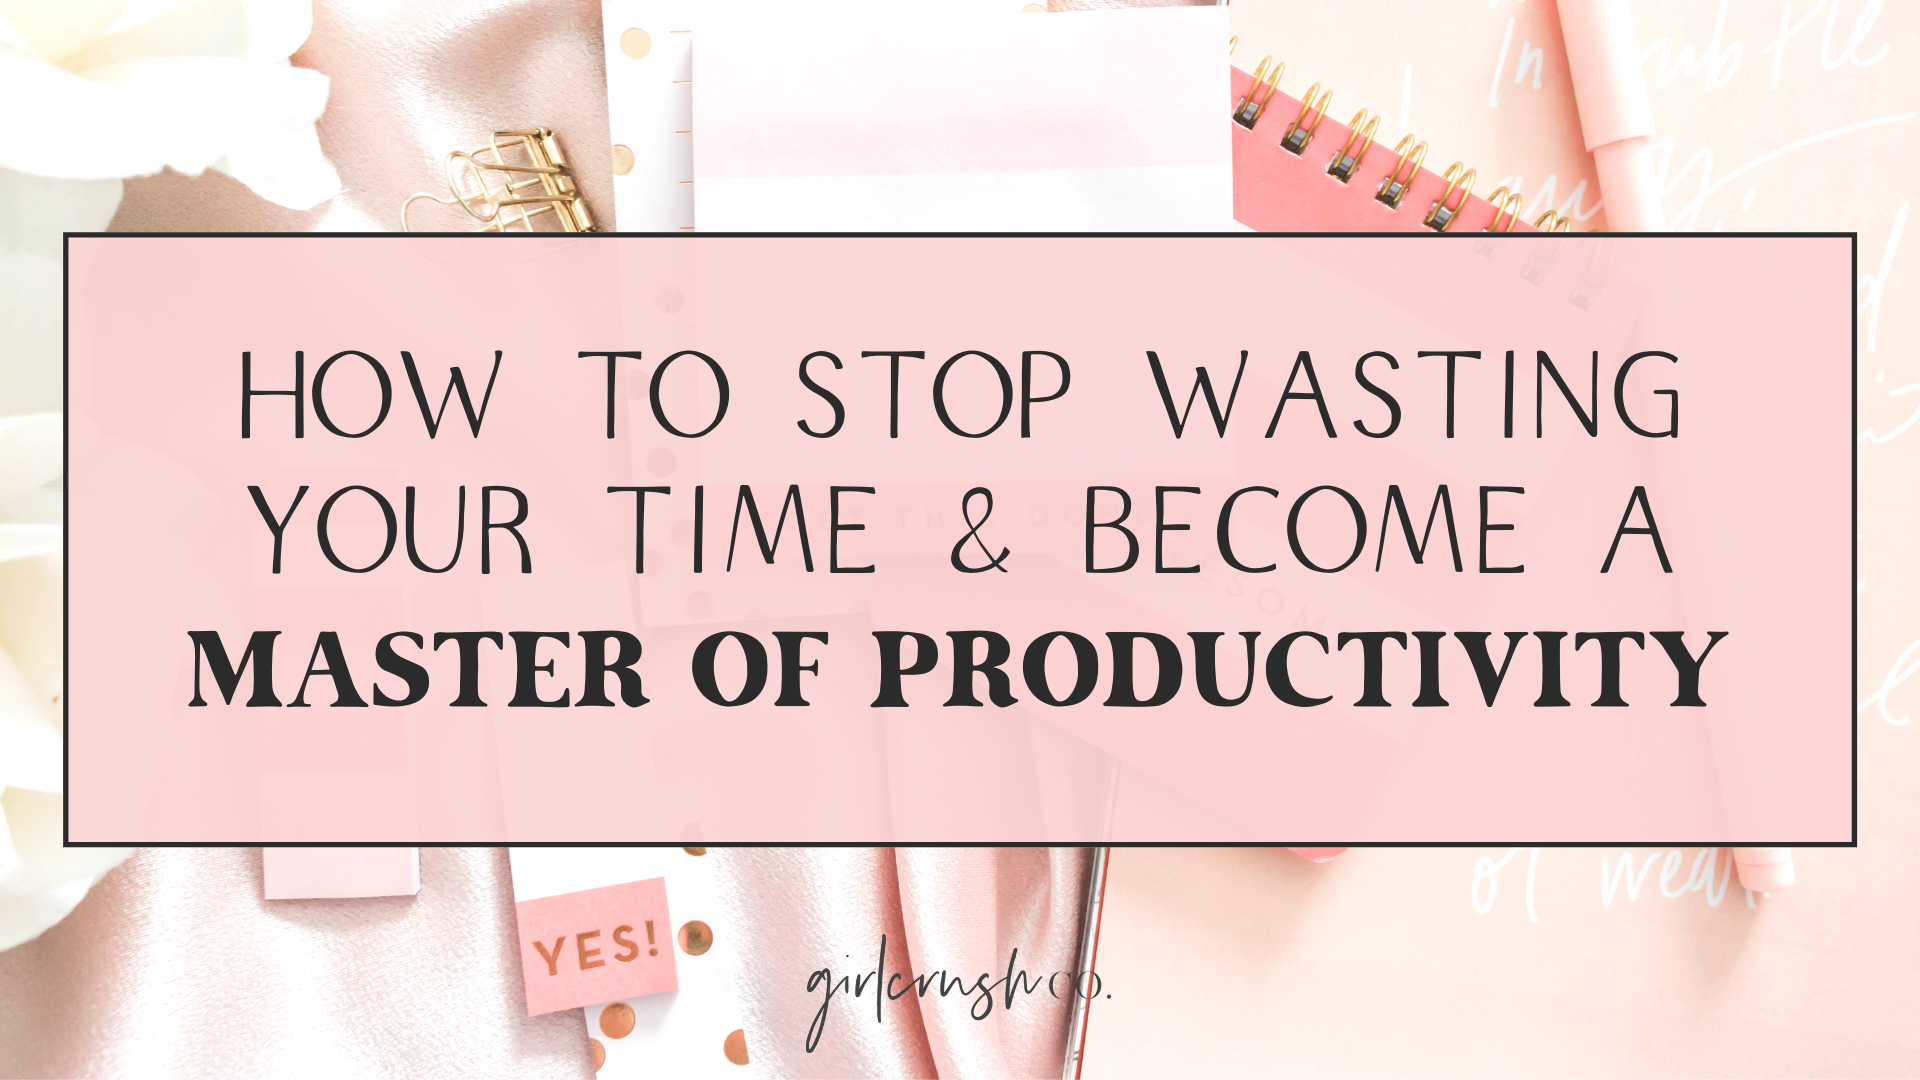 How To Stop Wasting Your Time and Become a Master of Productivity